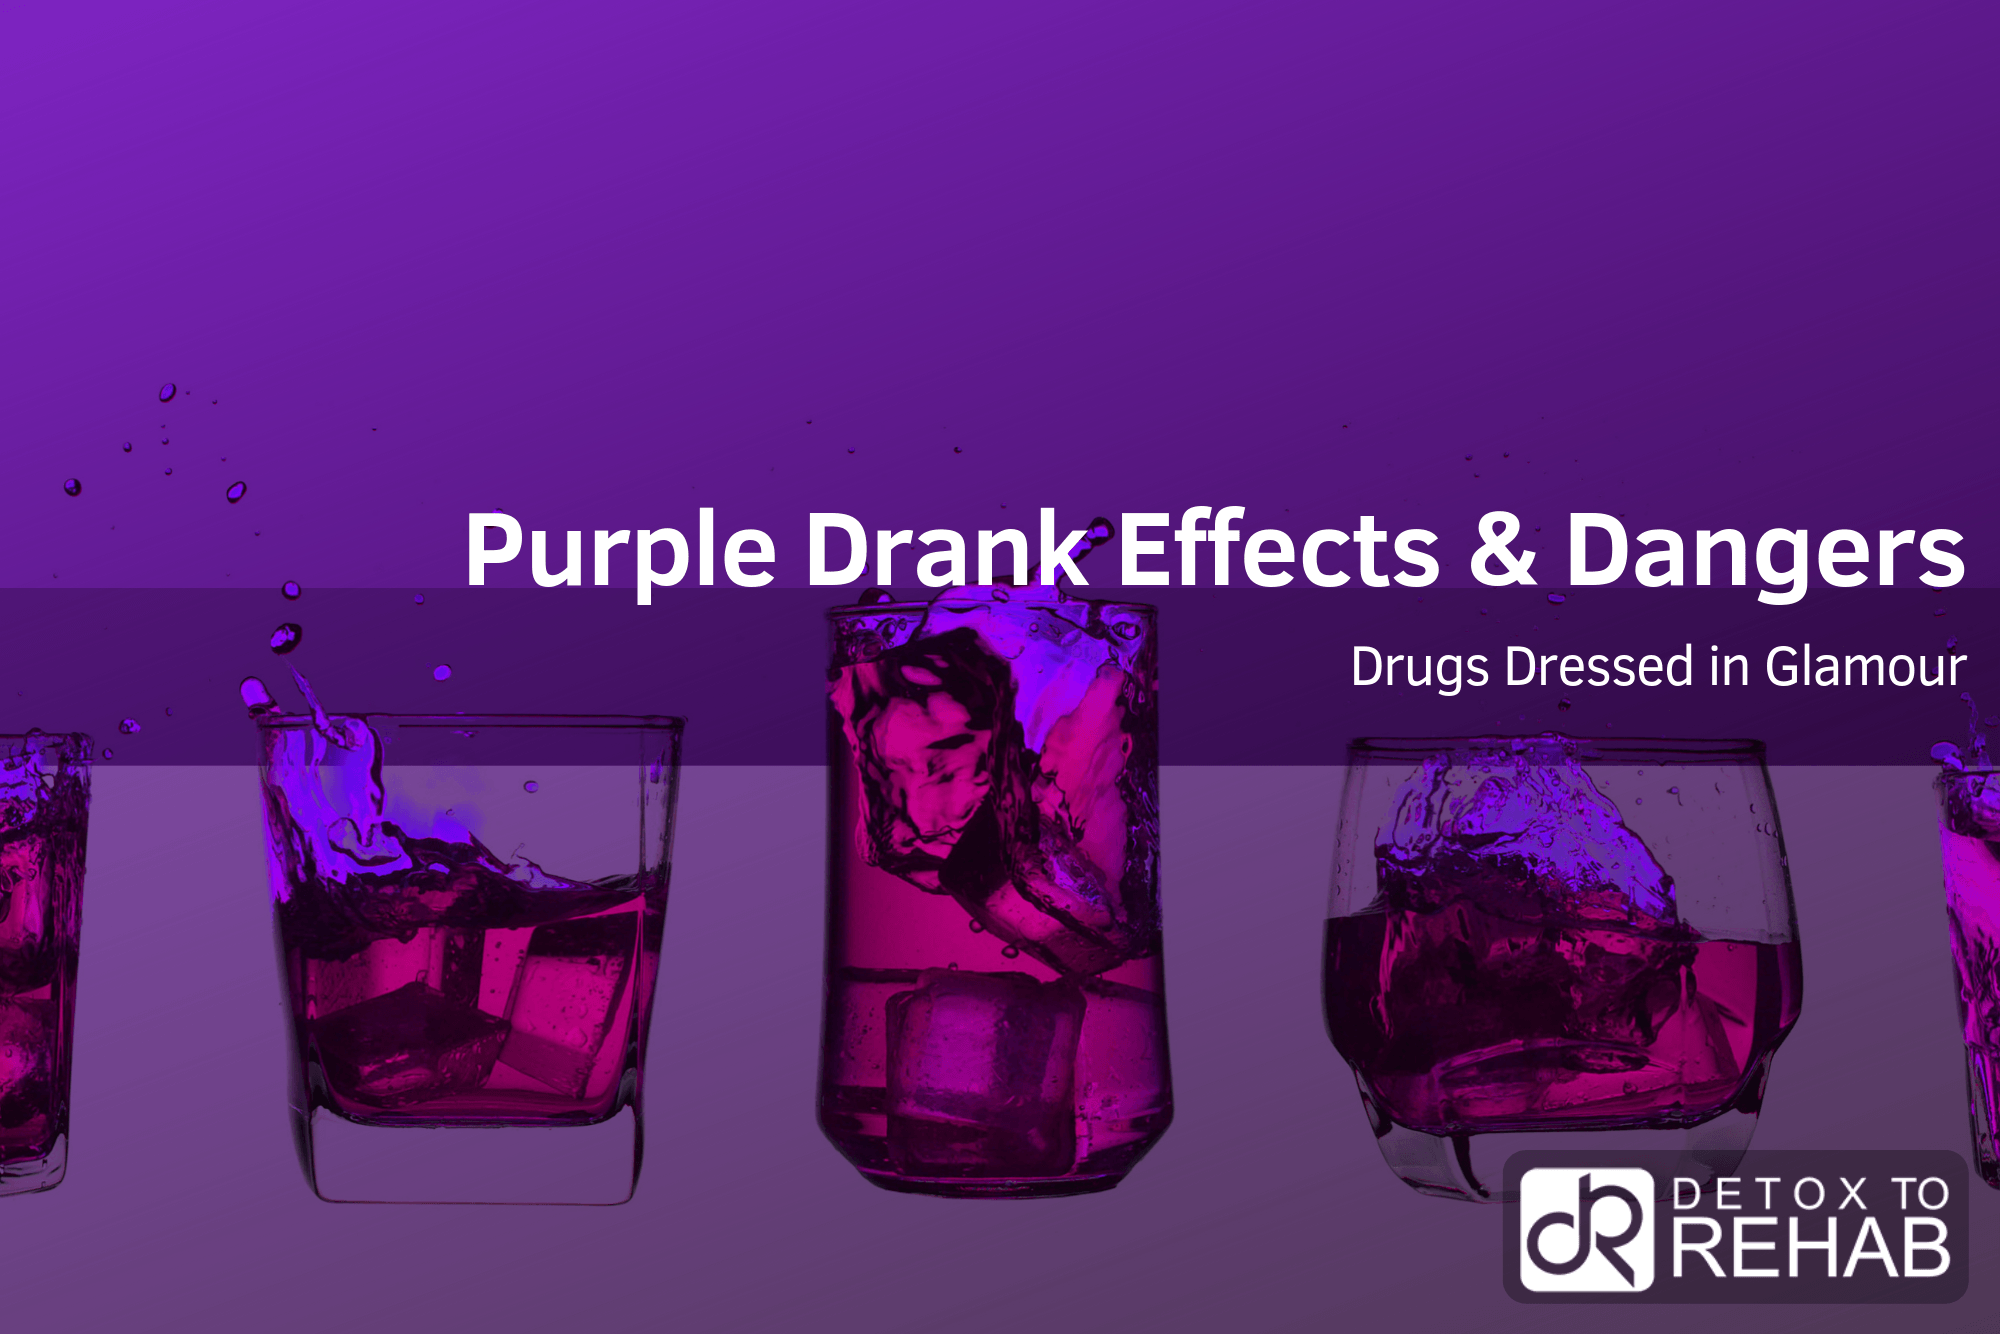 Purple Drank Effects and Dangers